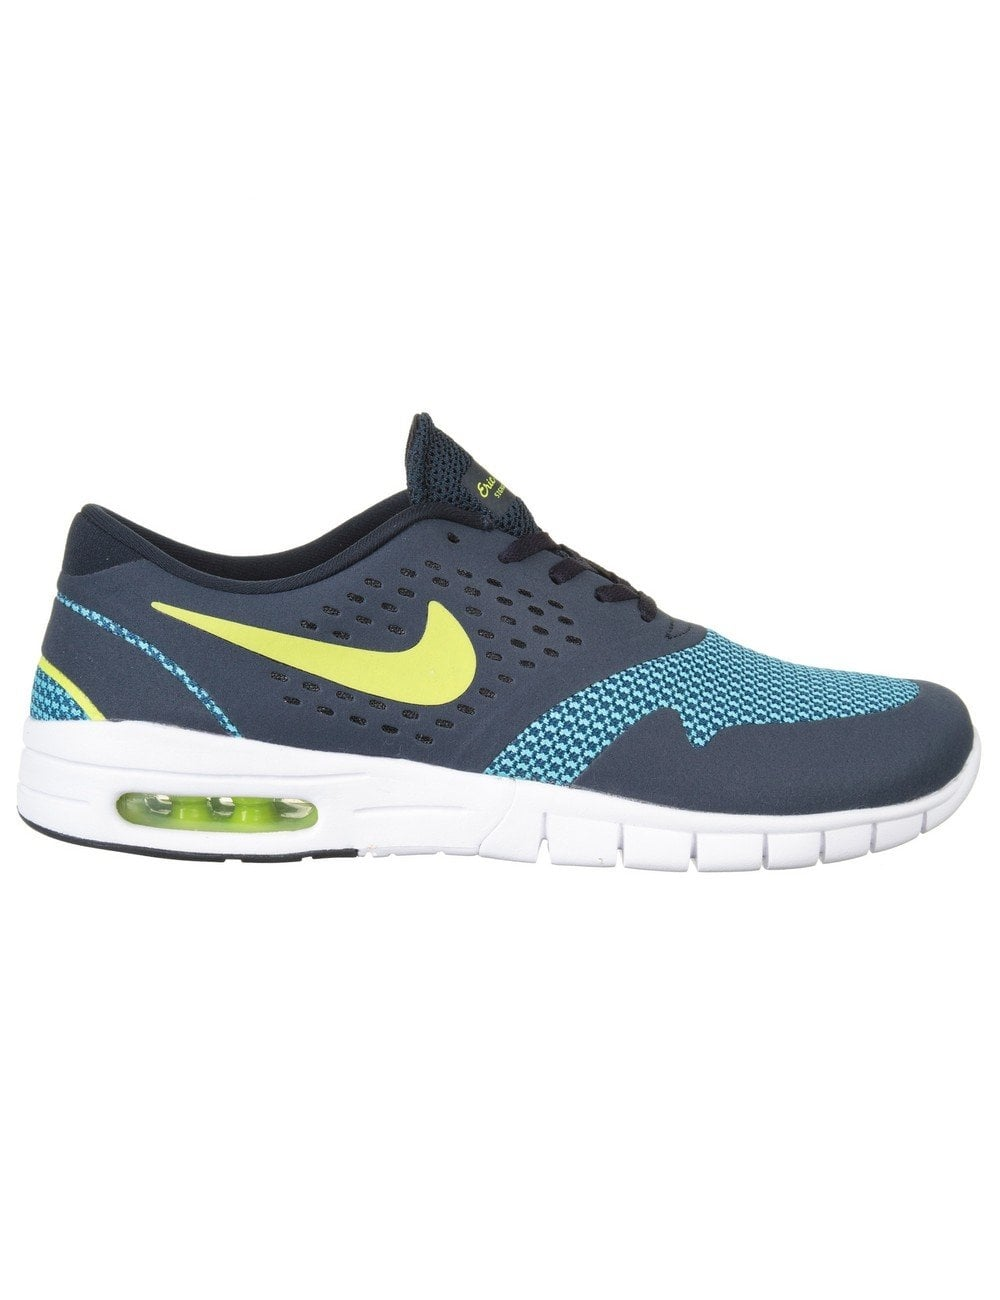 better latest online store Eric Koston 2 Max Trainers - Dark Obsidian